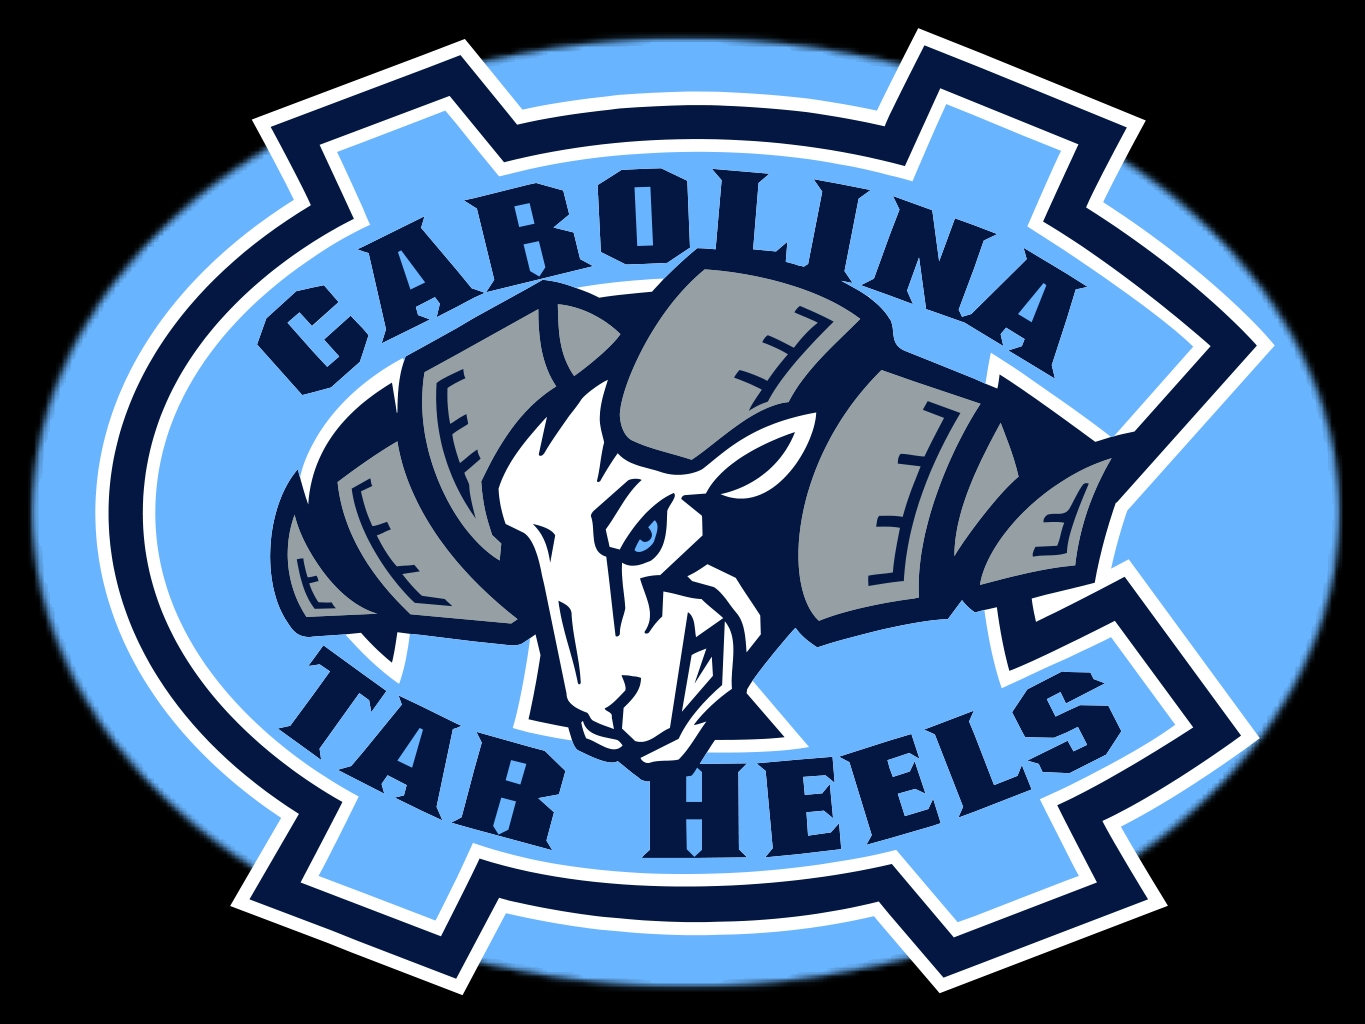 North carolina tar heels Logos.